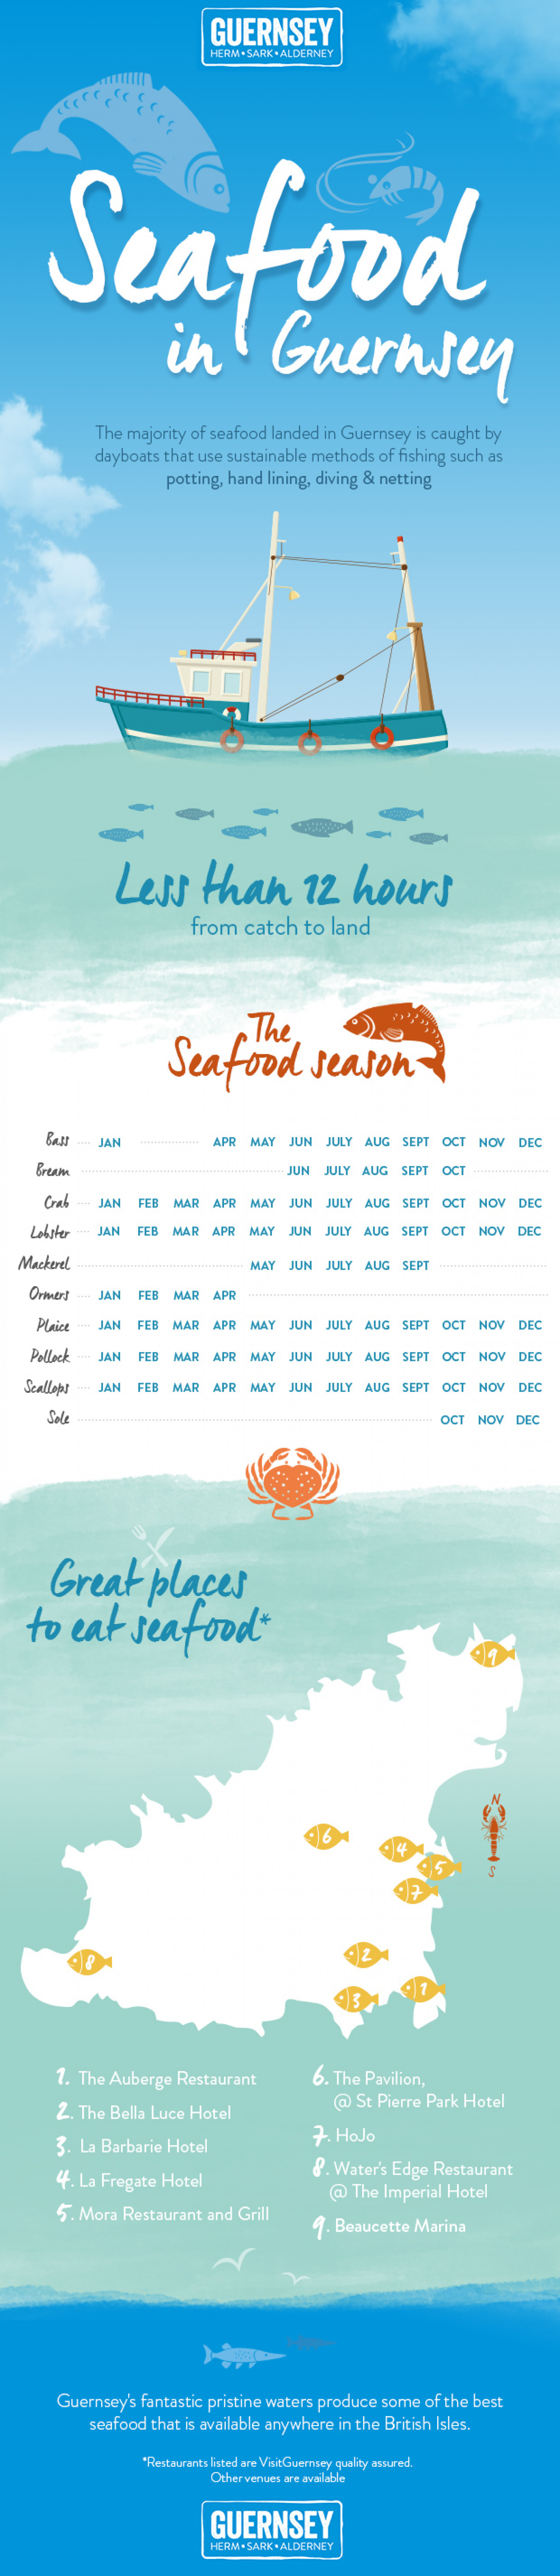 Seafood in Guernsey Infographic